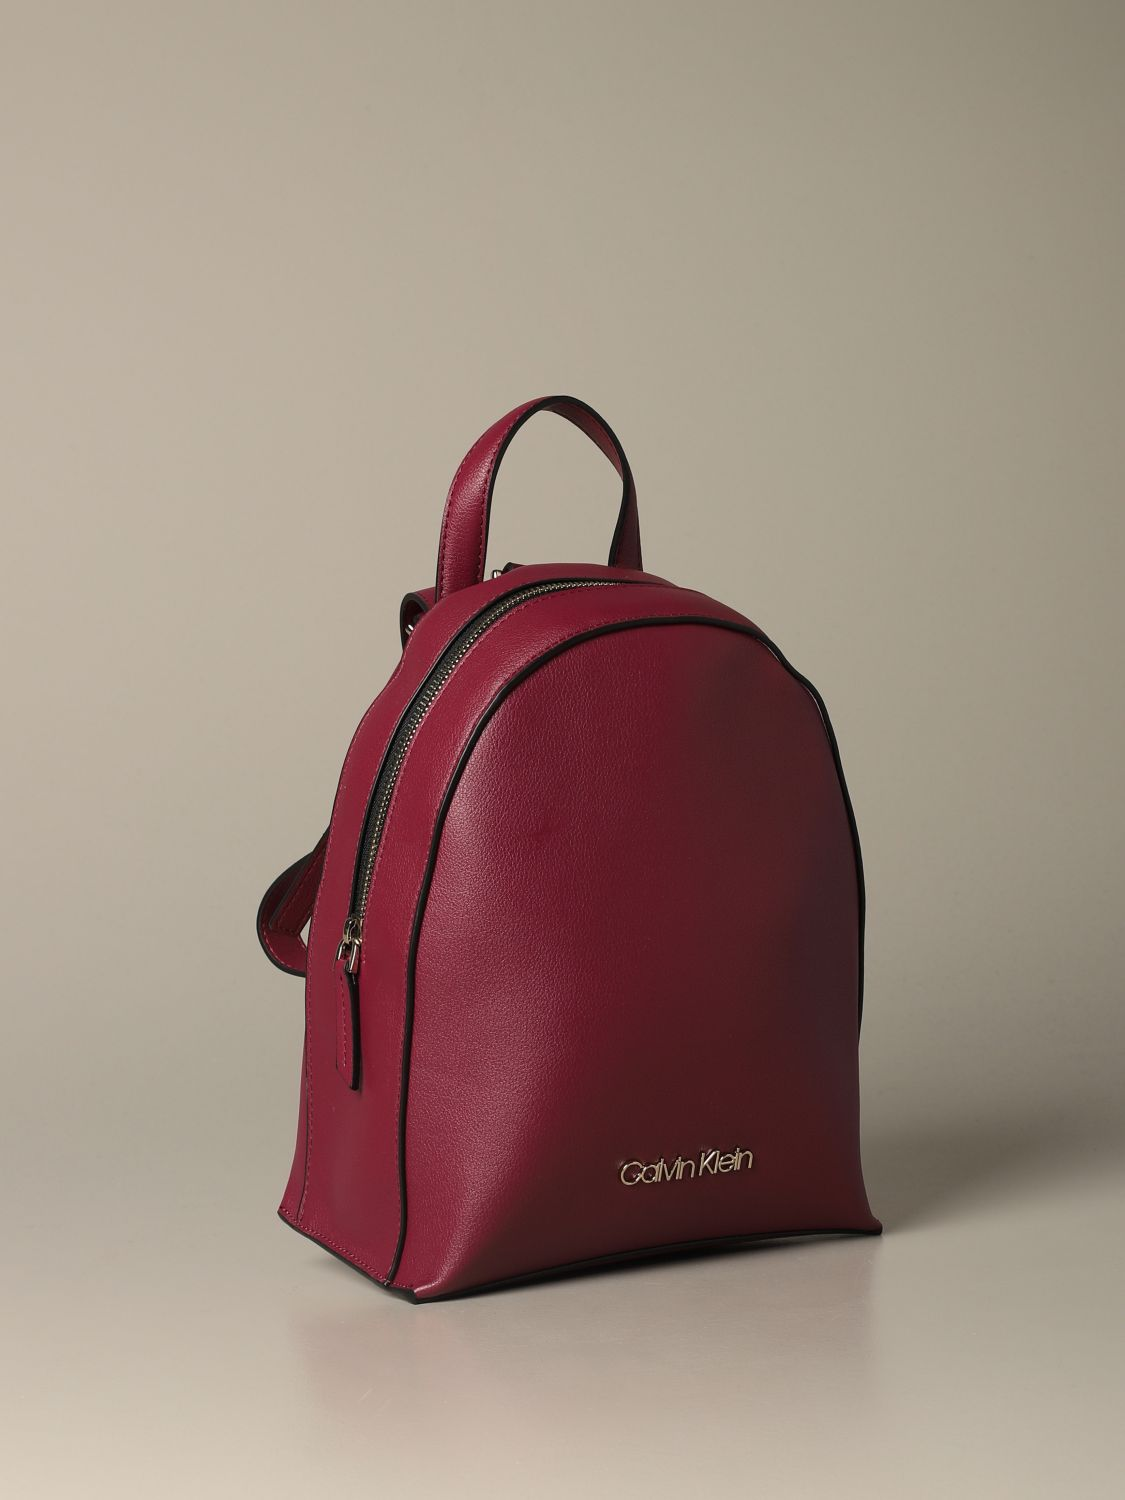 Backpack women Calvin Klein red 3